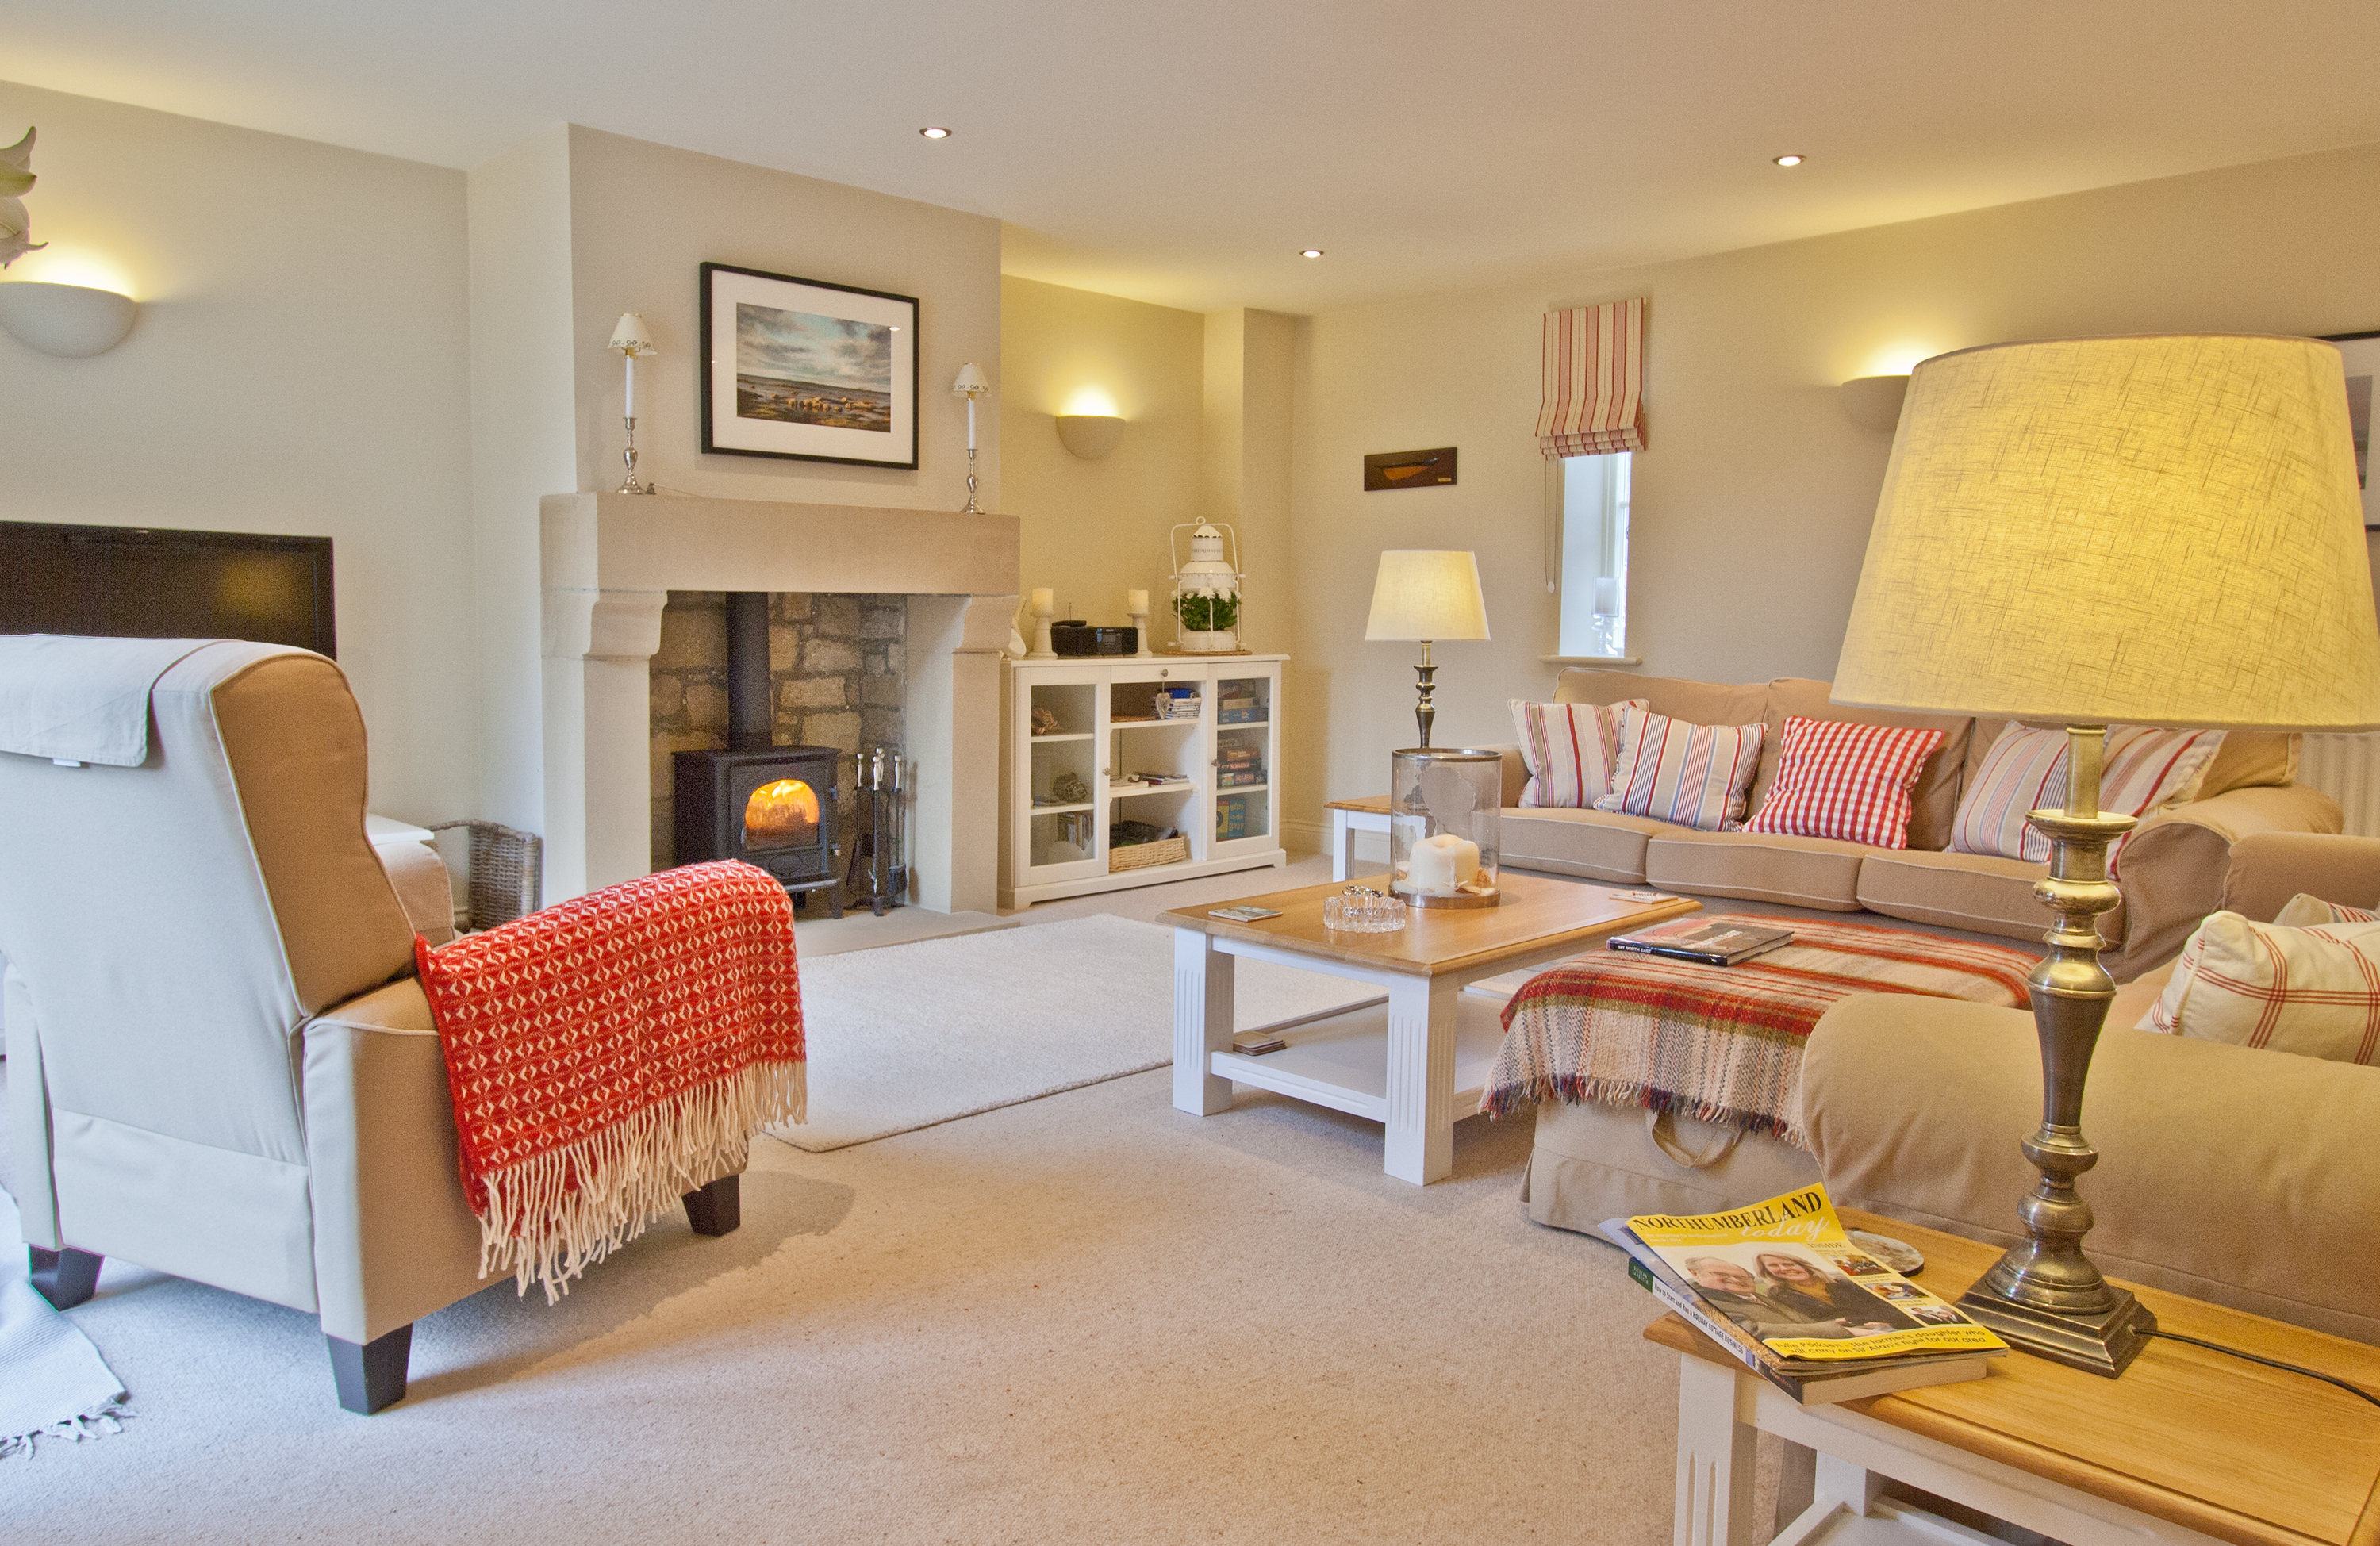 holiday-cottages-seahouses-luxury-cottages-north-east-northumberland-coastal-cottages-coastal-retreats-boutique-escapes-seaside-cottages-views-of-the-sea